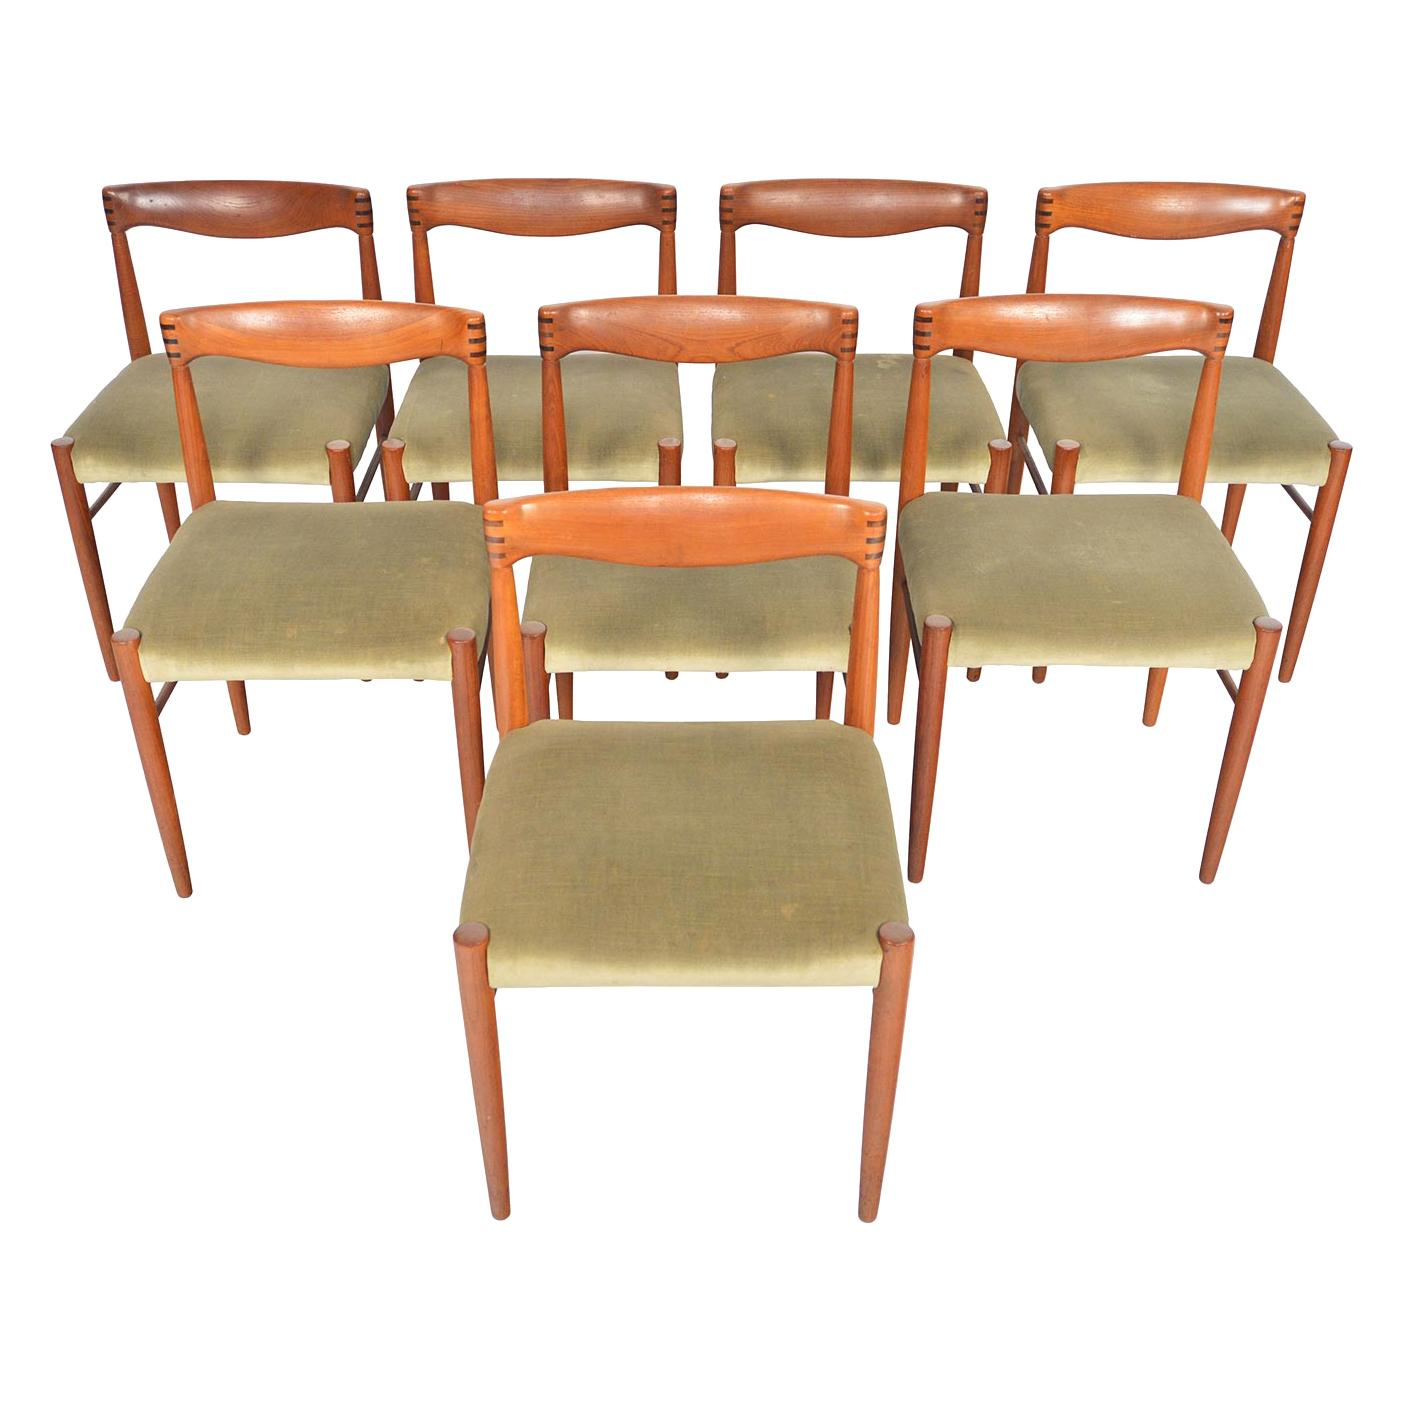 Set of Eight H.W. Klein Danish Modern Teak and Rosewood Dining Chairs by Bramin